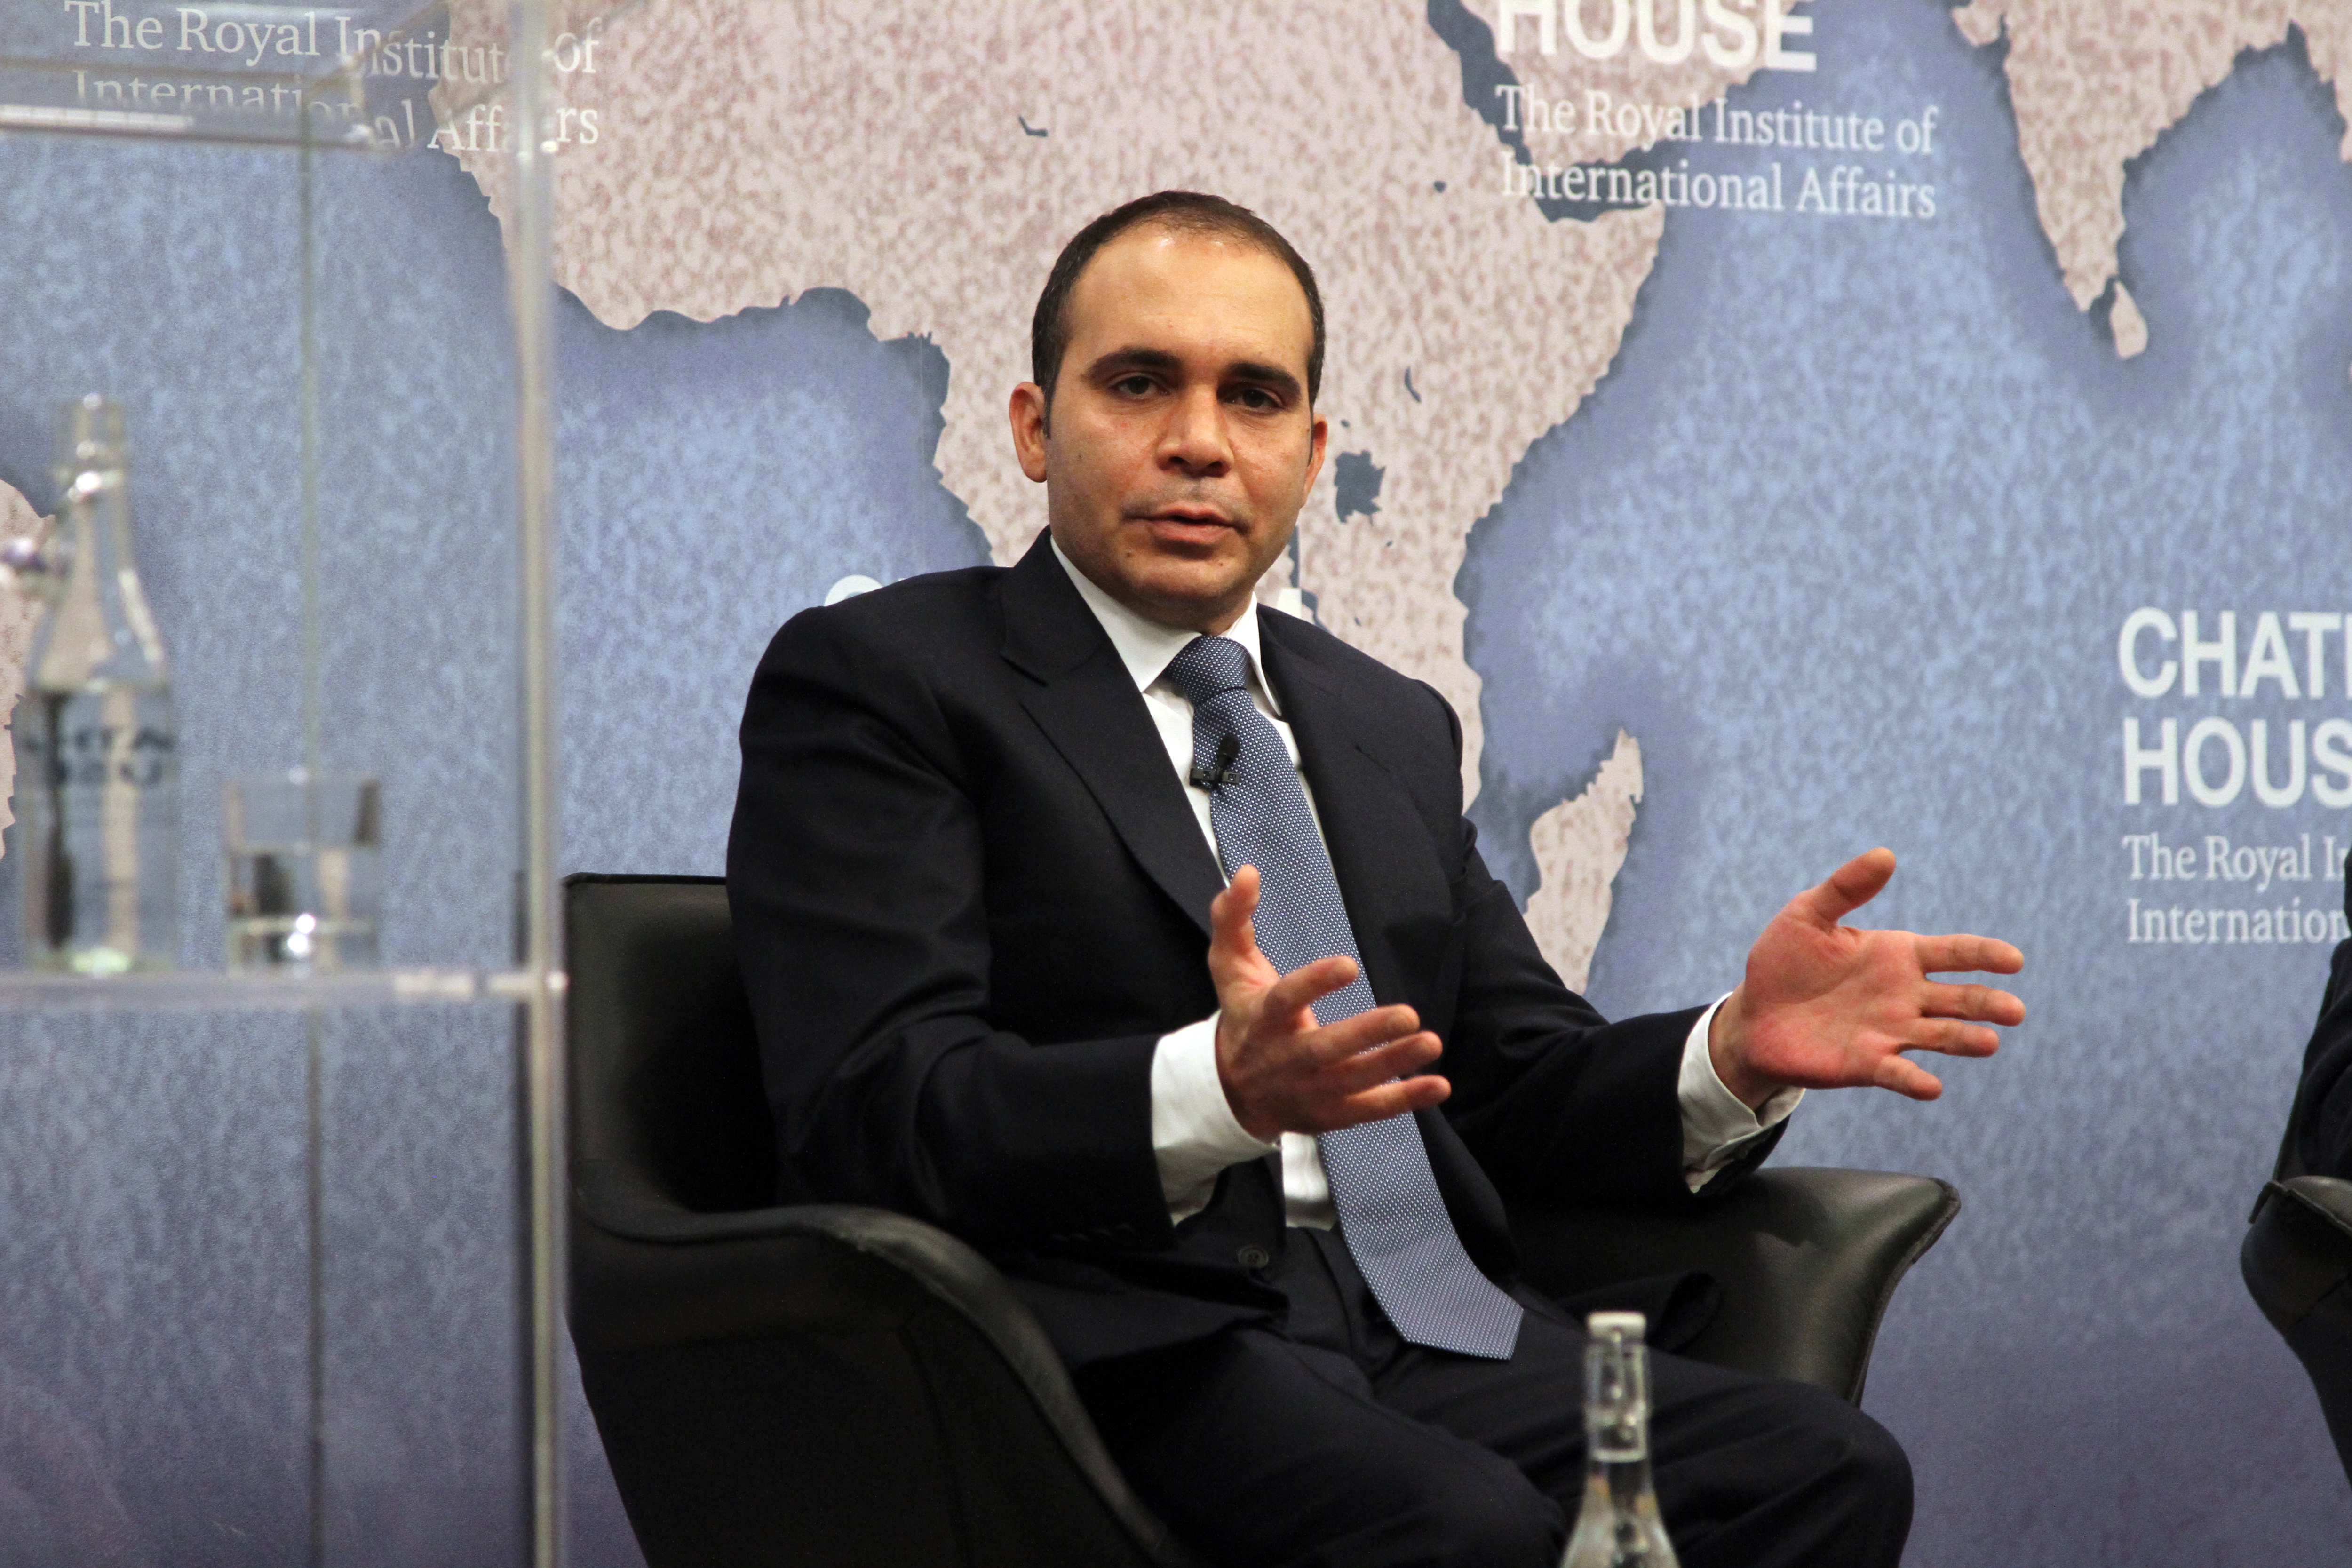 Prince Ali Bin Al Hussein of Jordan vows to root out corruption at footballs governing body, in a speech at Chatham House as part of his bid to become president of FIFA.